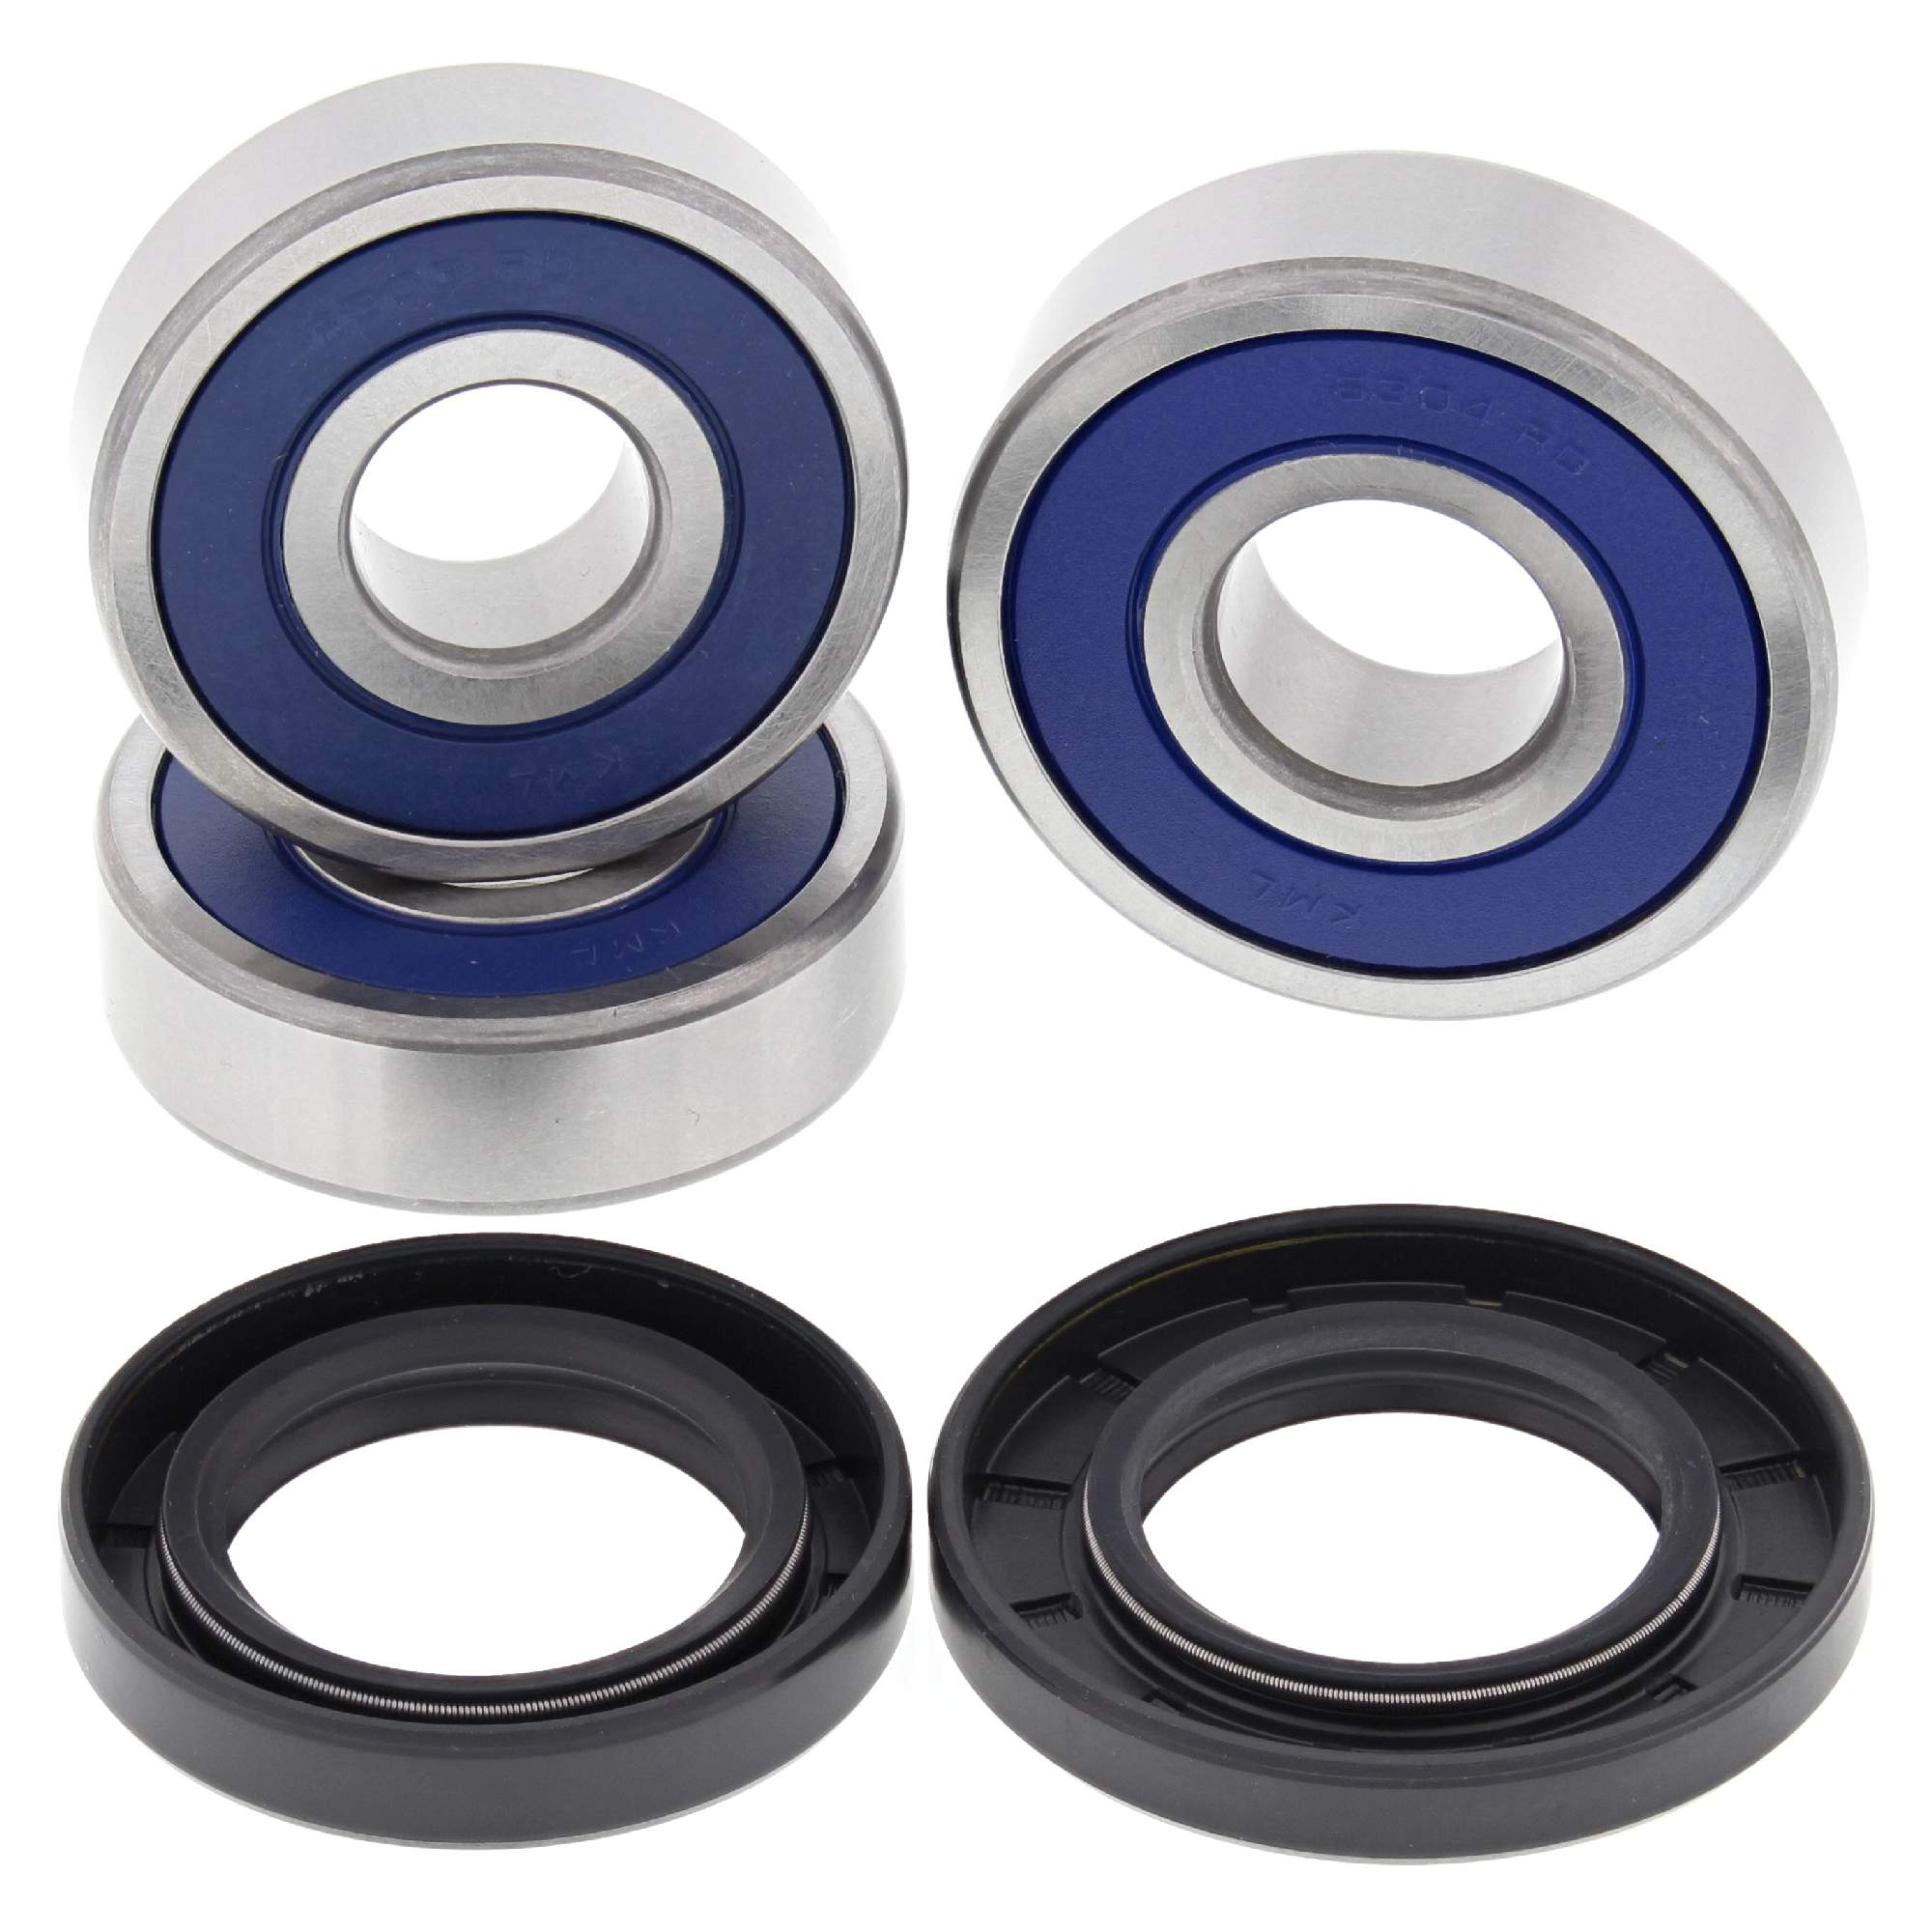 Bore Diameter: 10mm, Number of Pcs: 10pcs Fevas 5pcs //lot GT2 36 Tooth Pulley Timing Belt Pulley with 5mm 6mm 6.35mm 8mm 10mm bore for 10mm Wide GT2 Belt